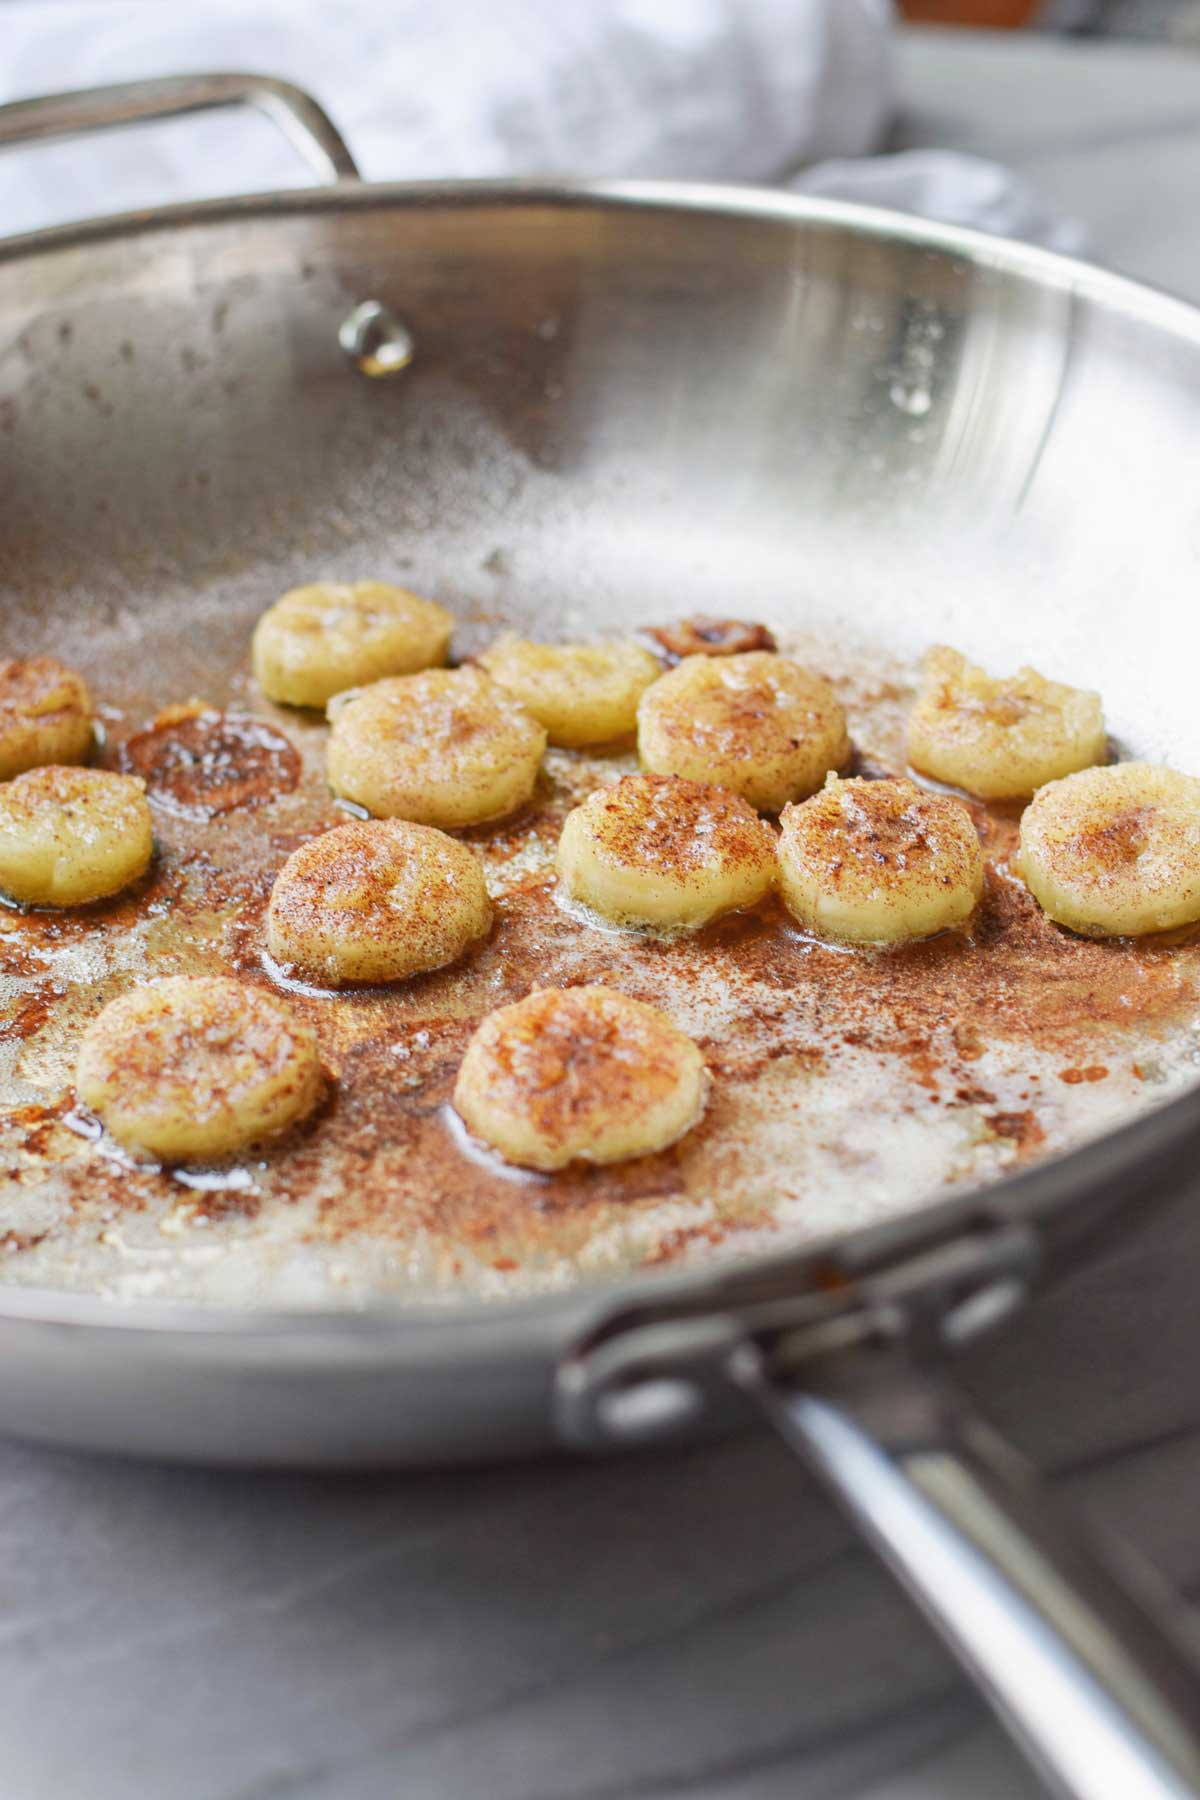 FRIED-HONEY-BANANAS-3.jpg